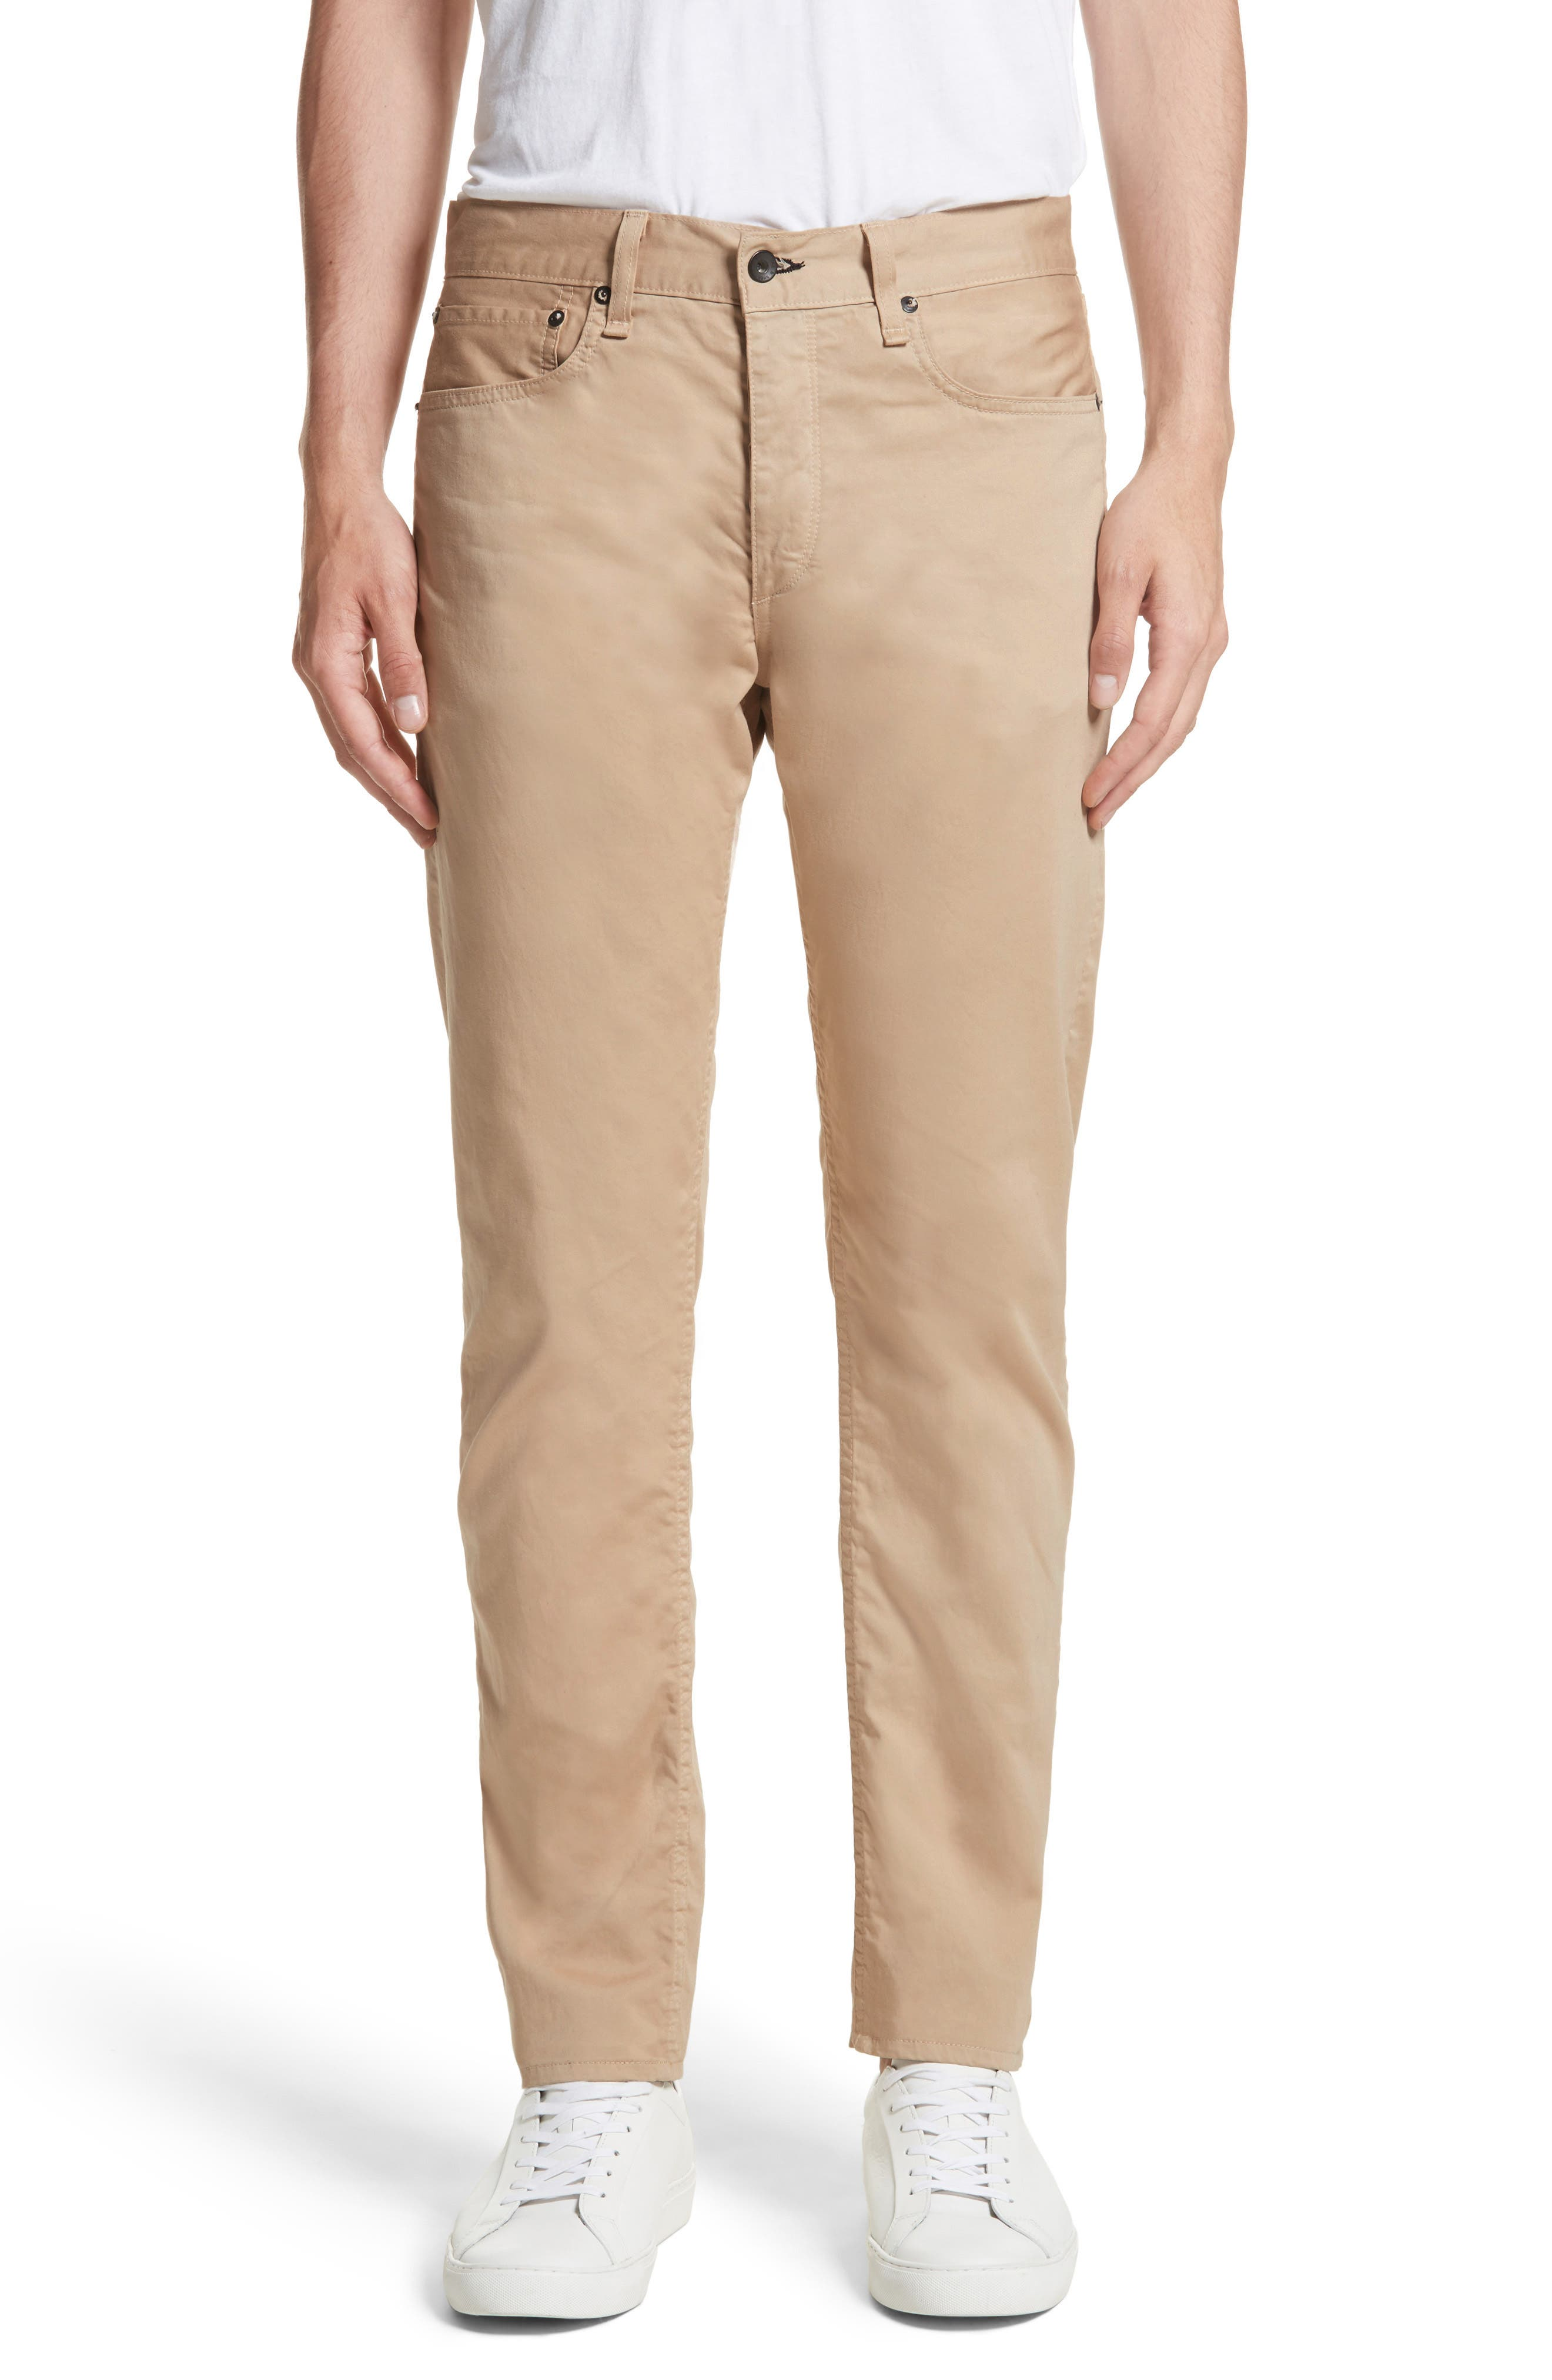 Fit 2 Five-Pocket Twill Pants,                         Main,                         color, Beige